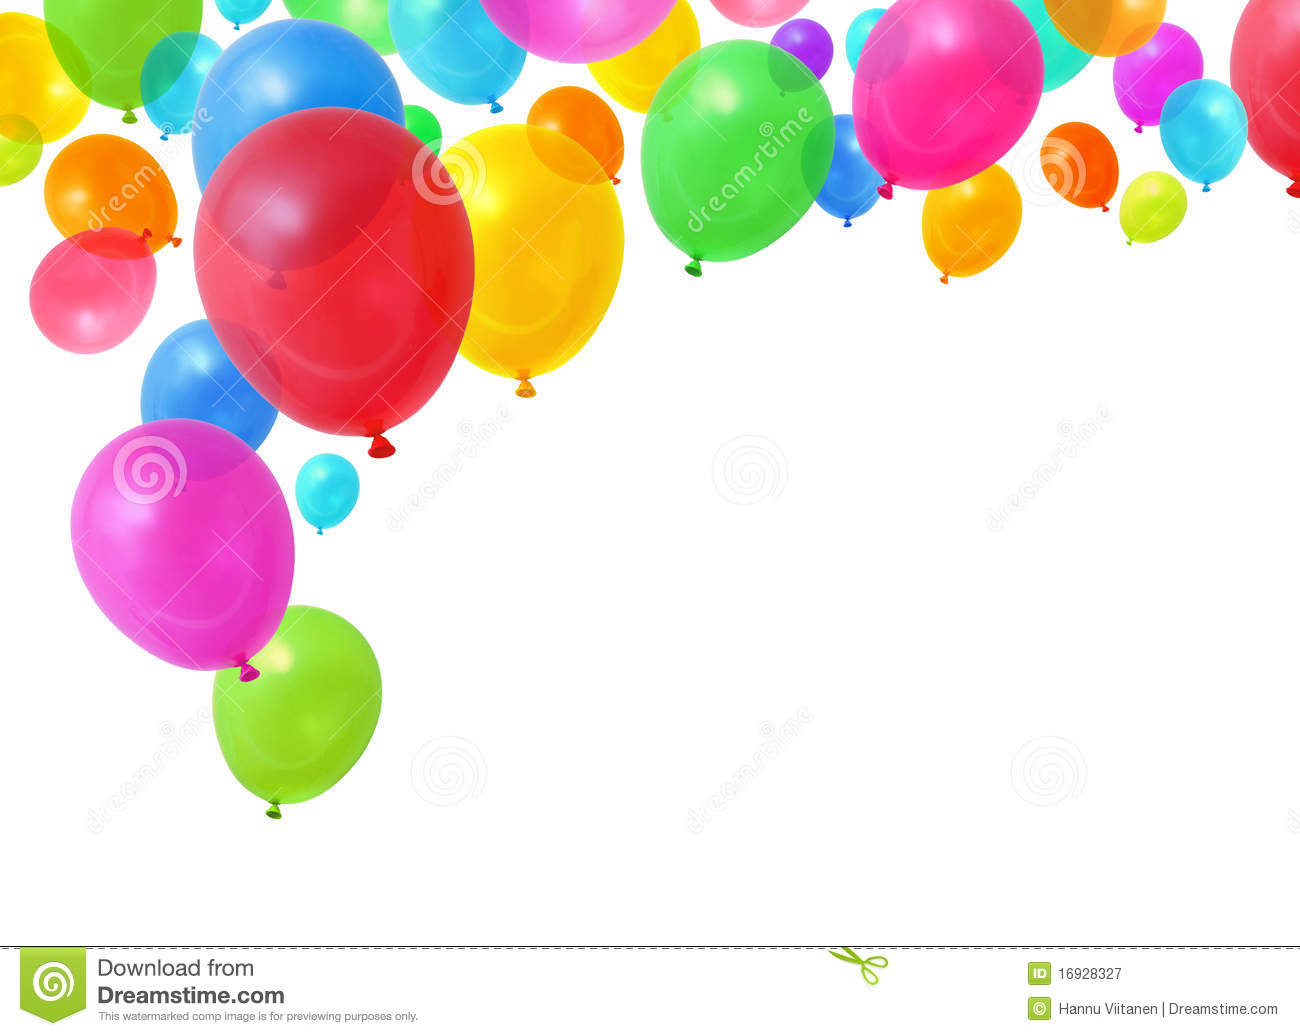 Colorful Balloons Royalty Free Stock Photography - Image: 16928327